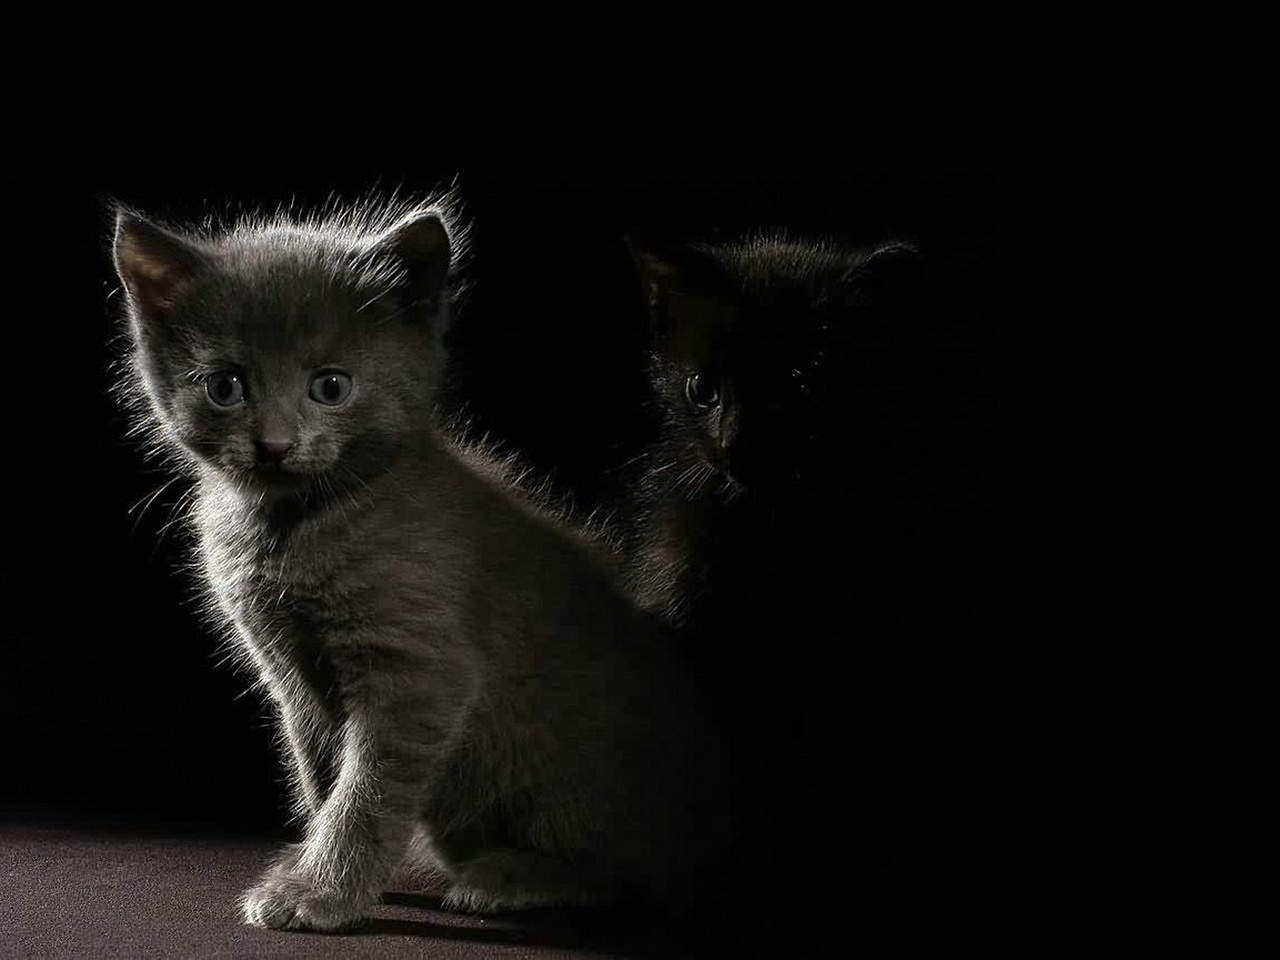 wallpaper kitten